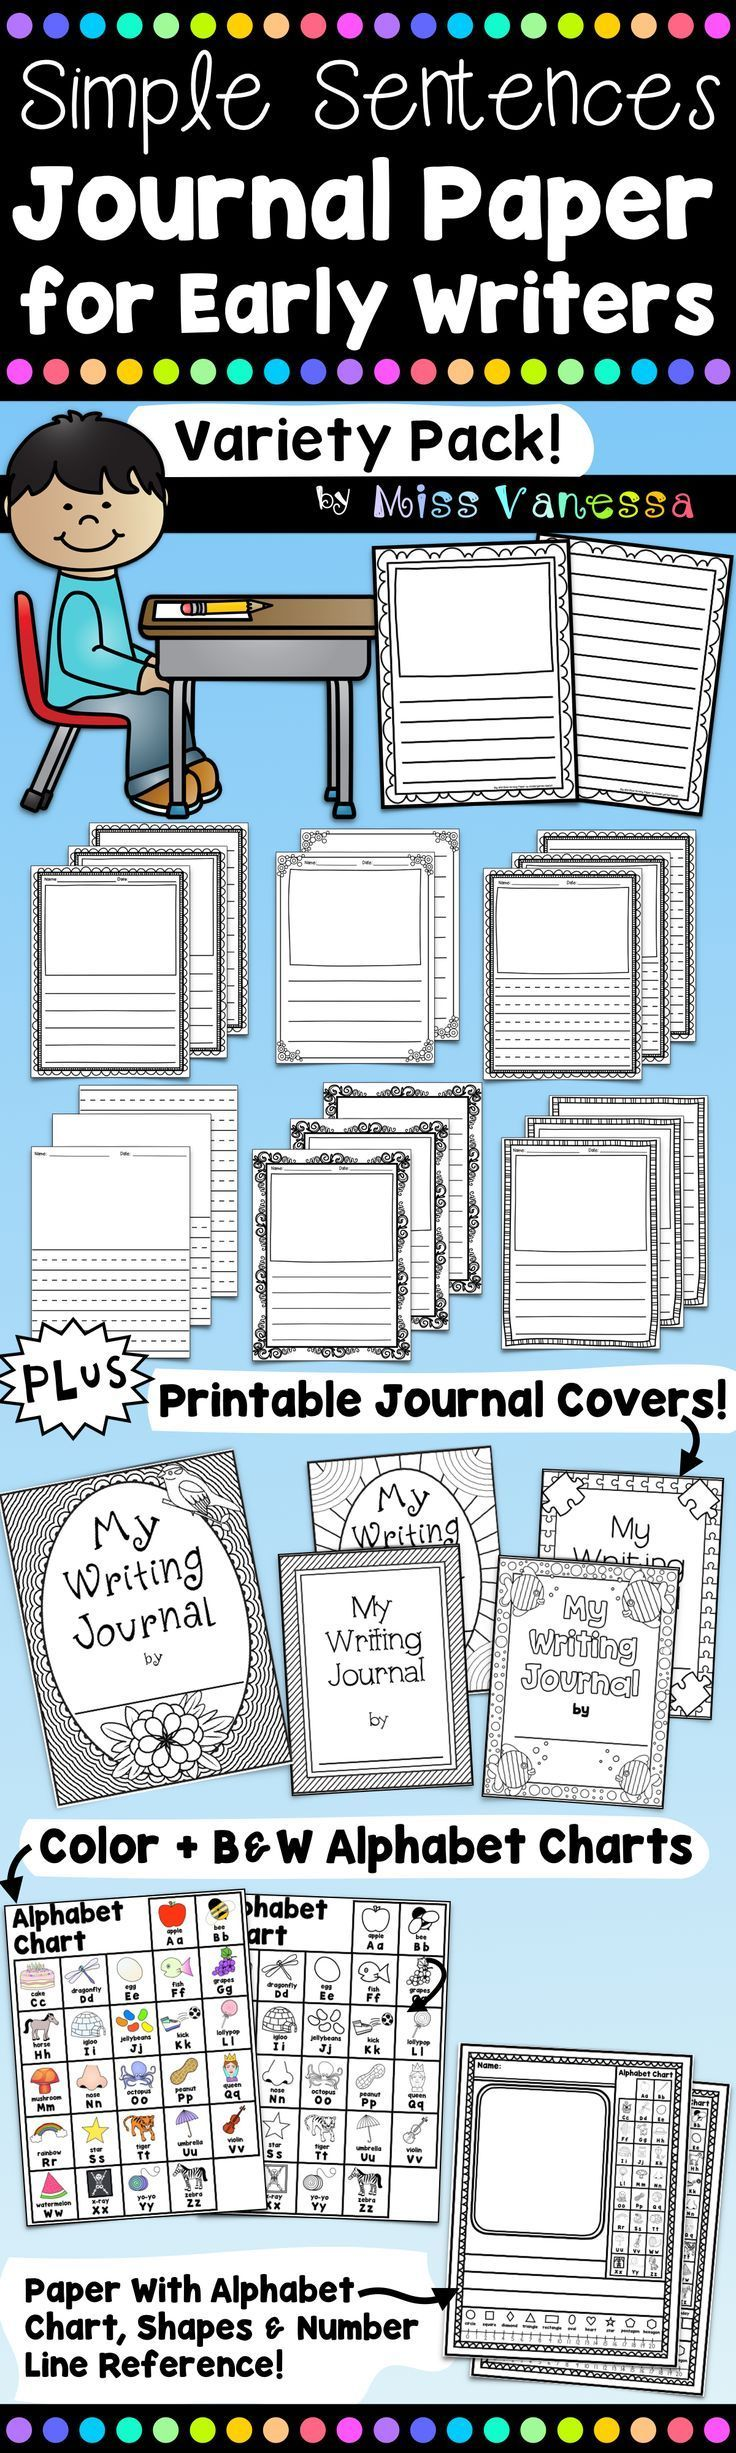 Journal Paper, Journal Covers And Alphabet Charts | School ...